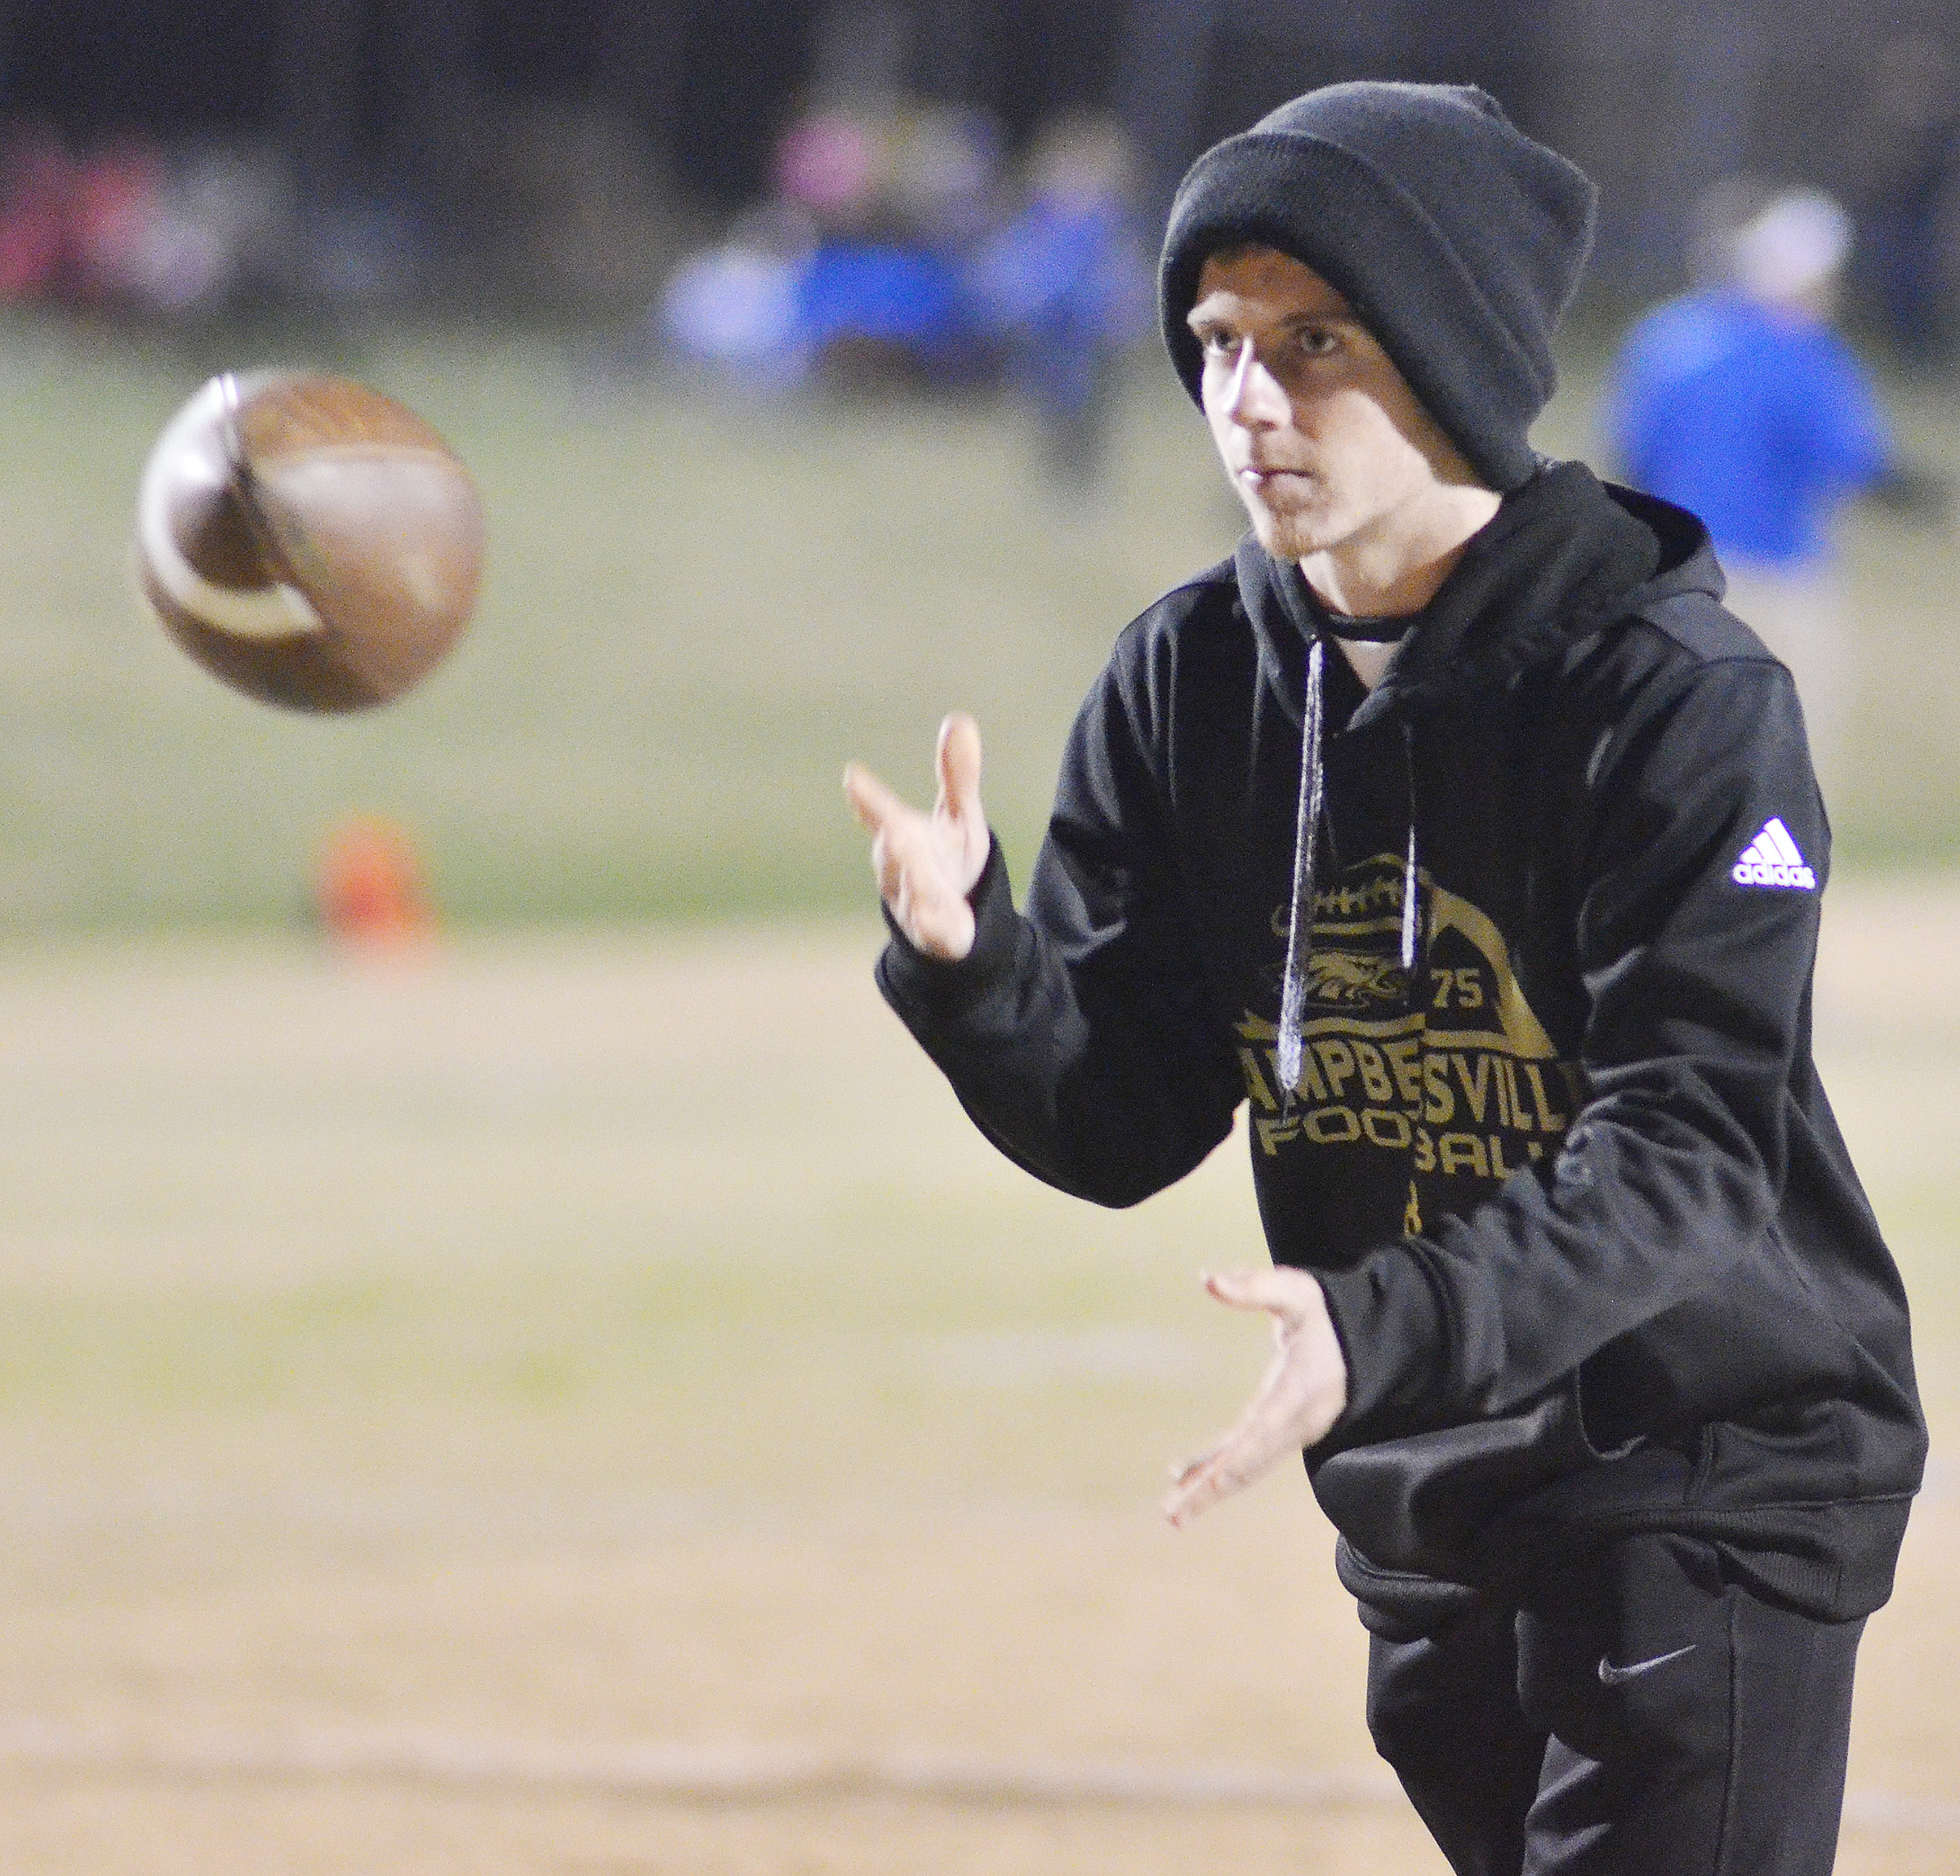 CHS sophomore Kelson Griffiths throws the ball during a warmup drill.